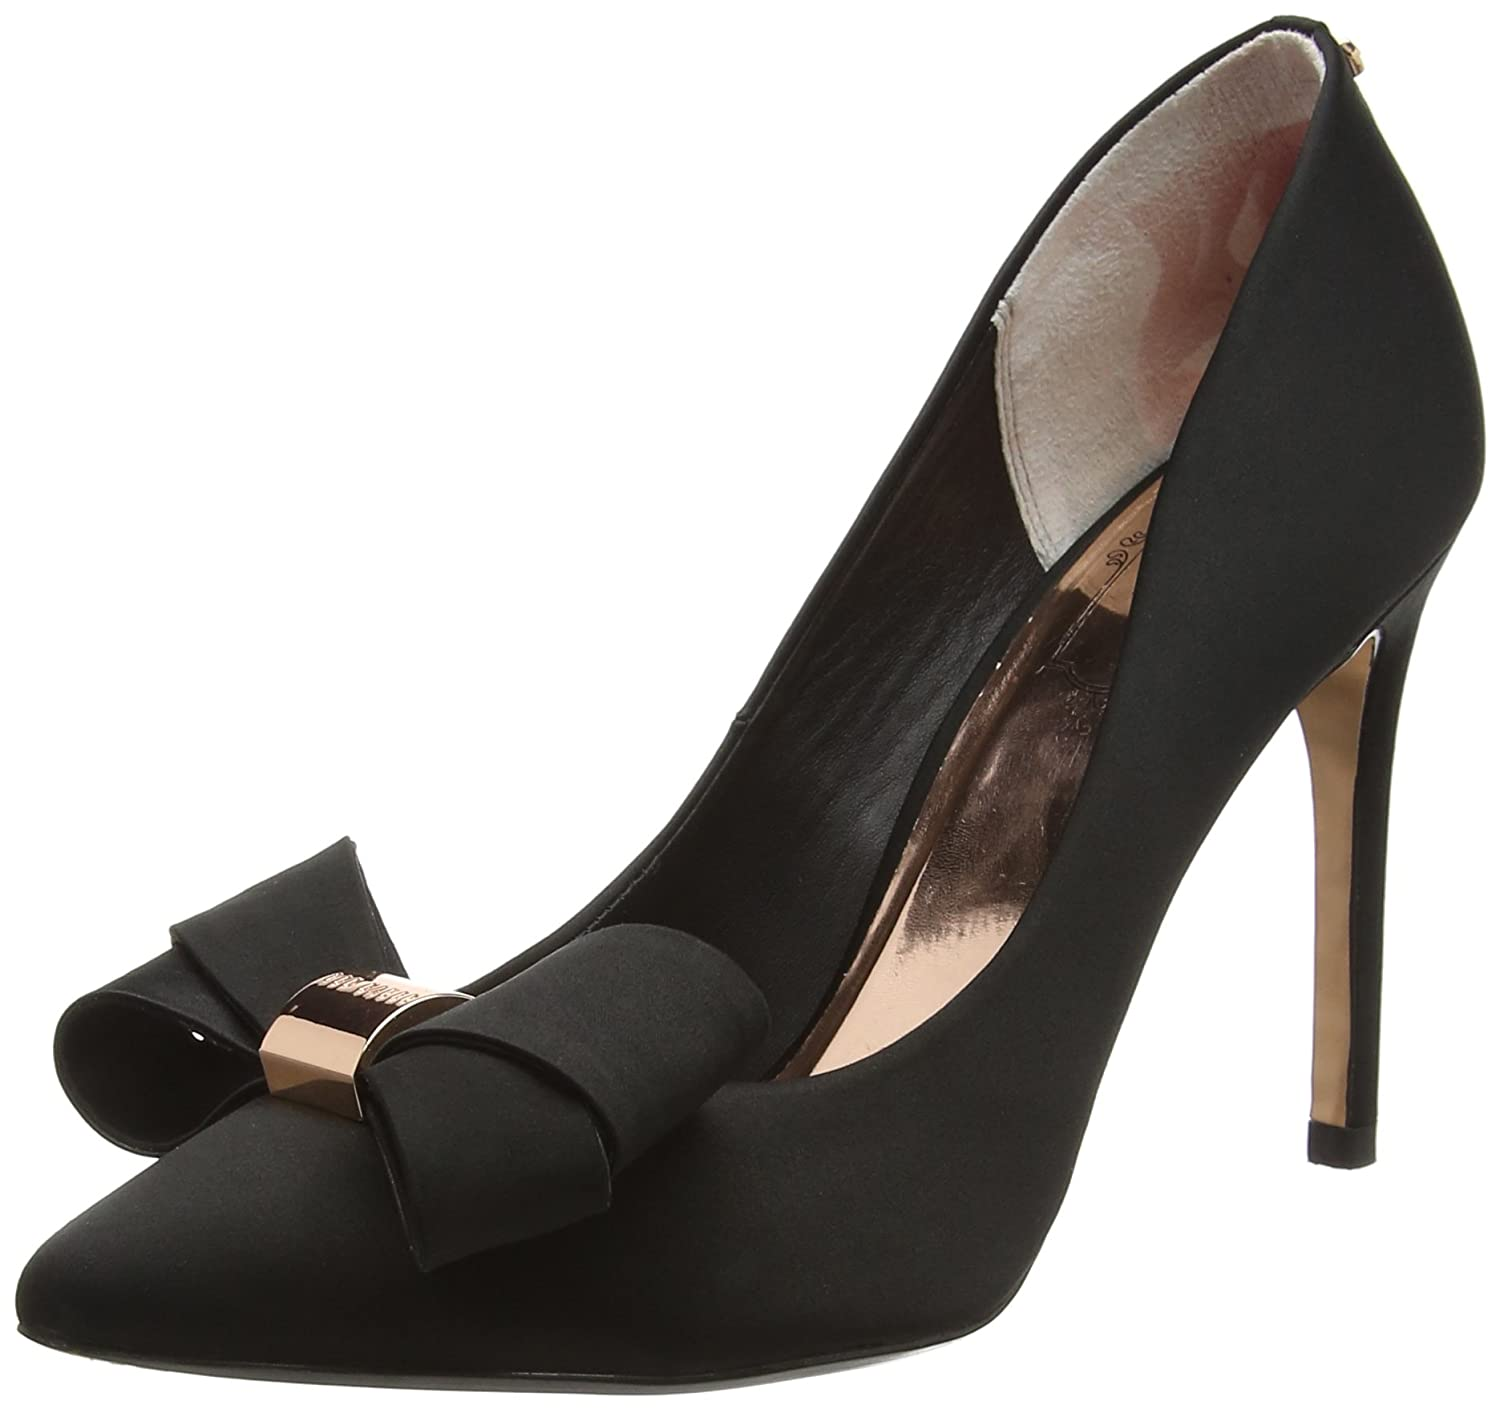 2aebed2e0d76 Ted Baker Women s Ichlibi Closed-Toe Pumps  Amazon.co.uk  Shoes   Bags